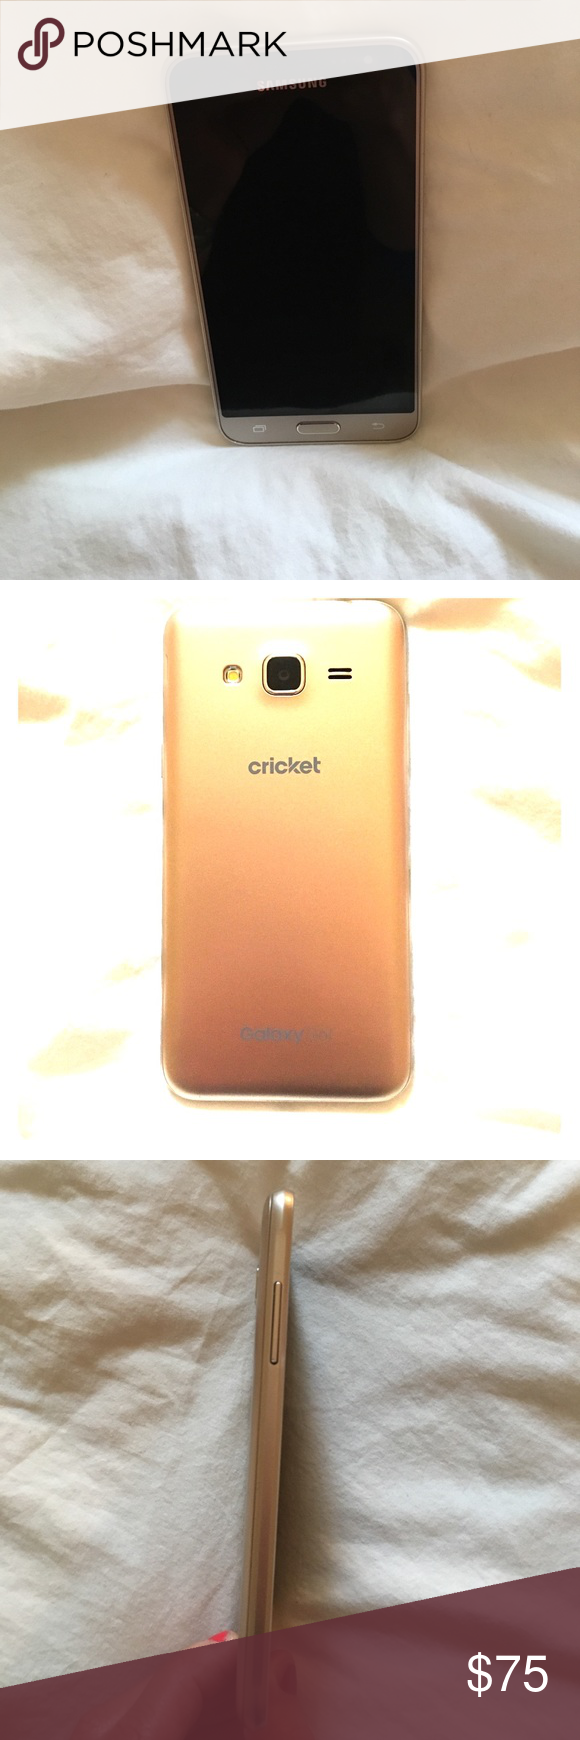 Samsung Galaxy Sol Cricket Wireless Phone Used For 1 Year Had A Case On During The Entire Year So Screen And Back Have Very Cricket Wireless Wireless Galaxy